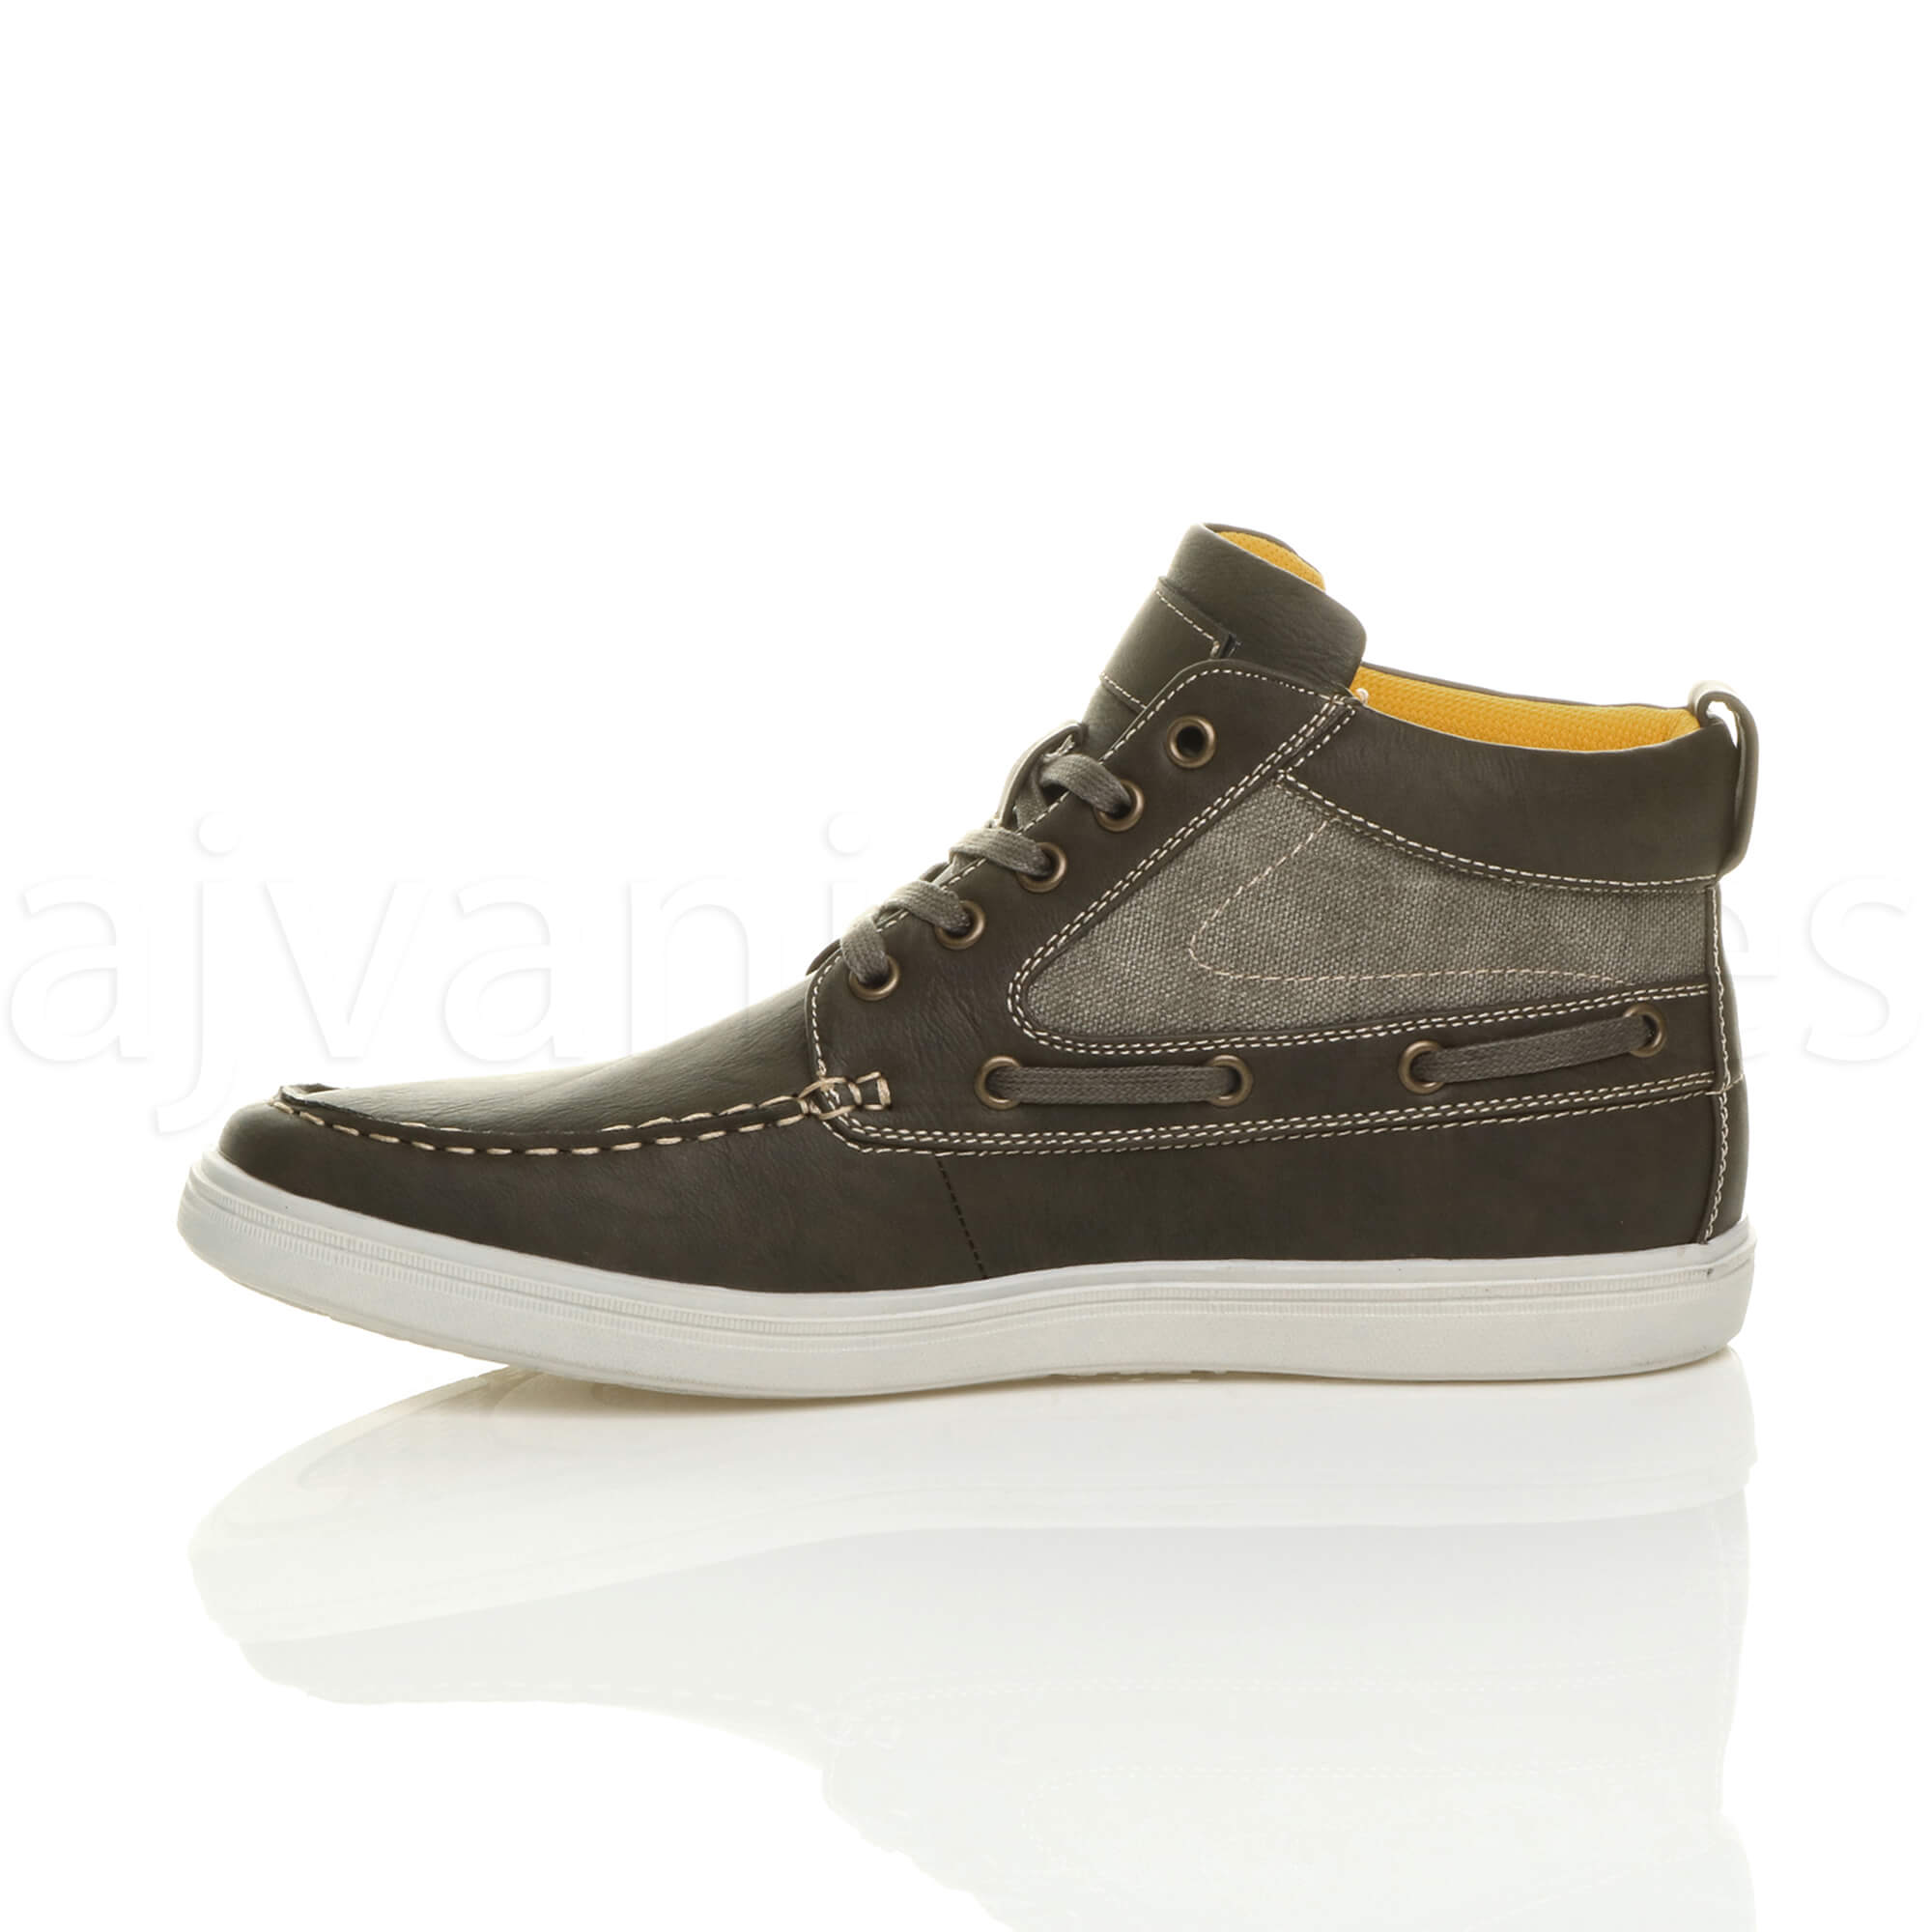 MENS-FLAT-LACE-UP-CASUAL-BOAT-CONTRAST-HI-TOP-TRAINERS-ANKLE-BOOTS-PUMPS-SIZE thumbnail 18